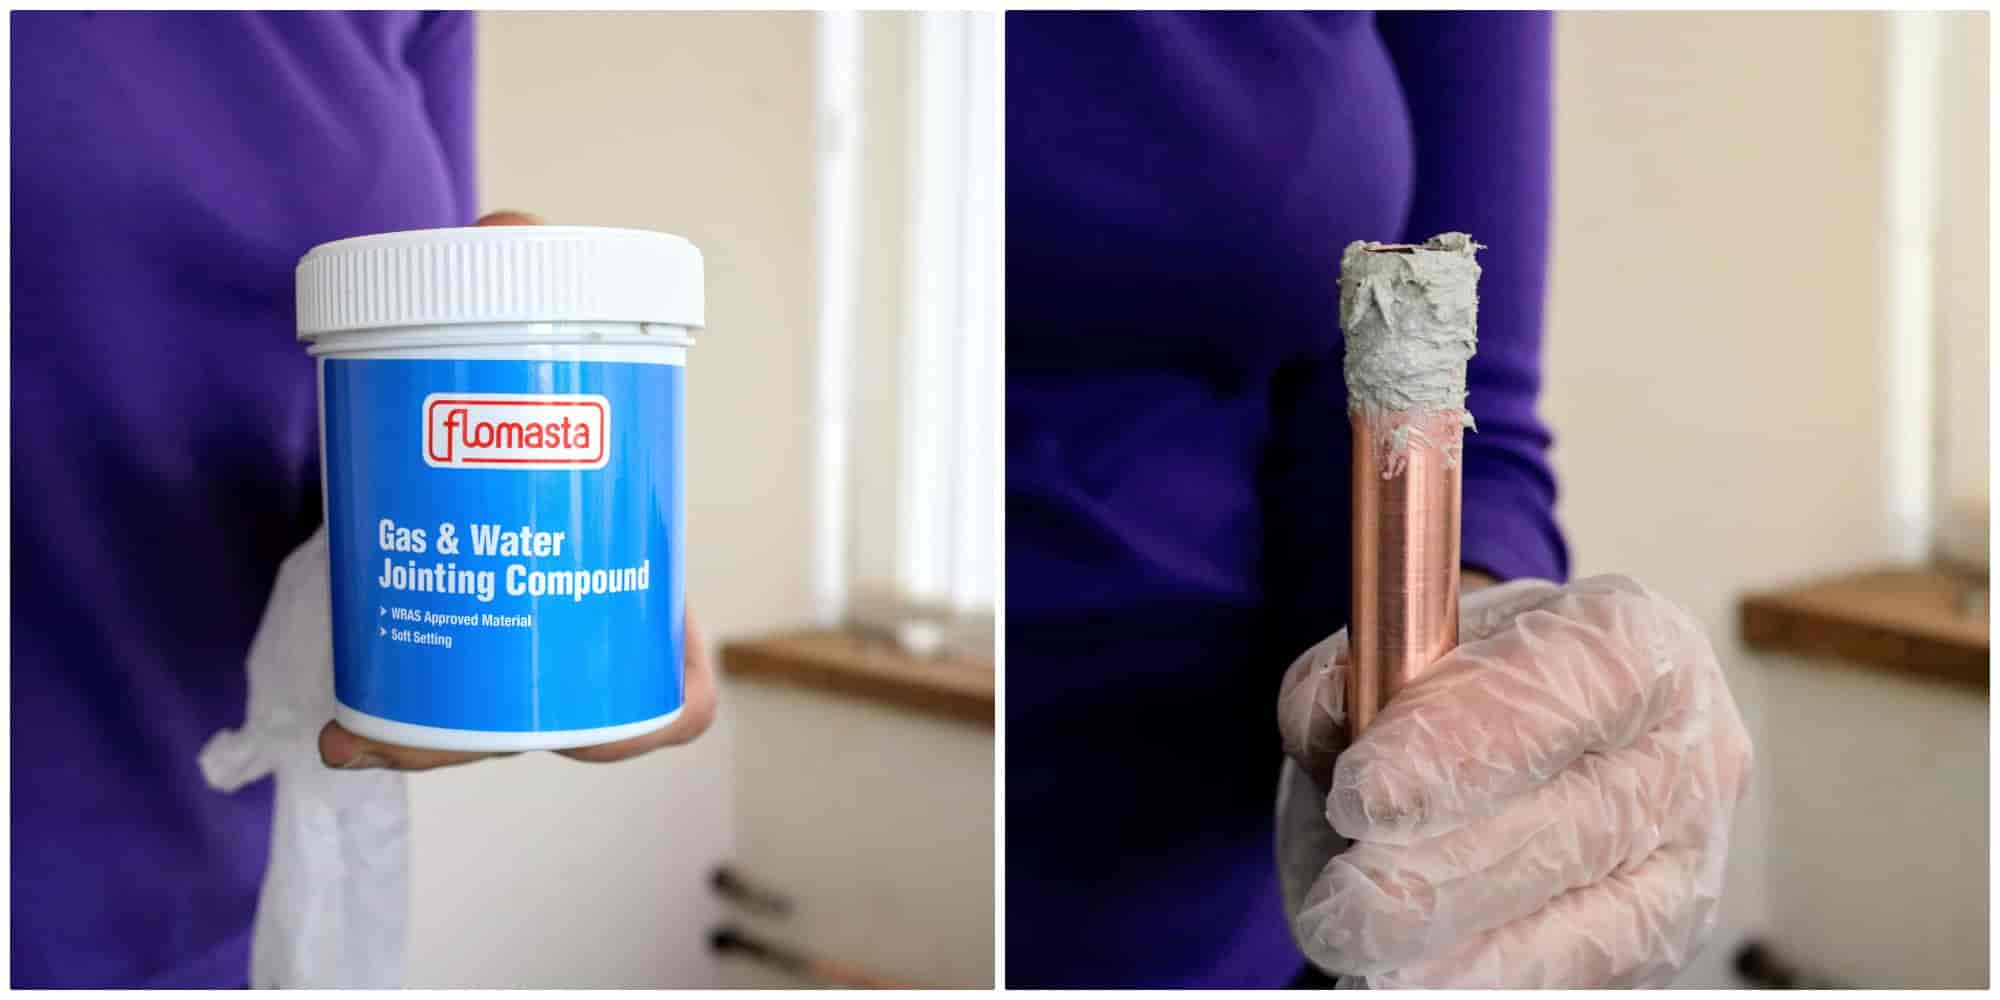 using gas & water jointing compound on copper pipe for isolation valve